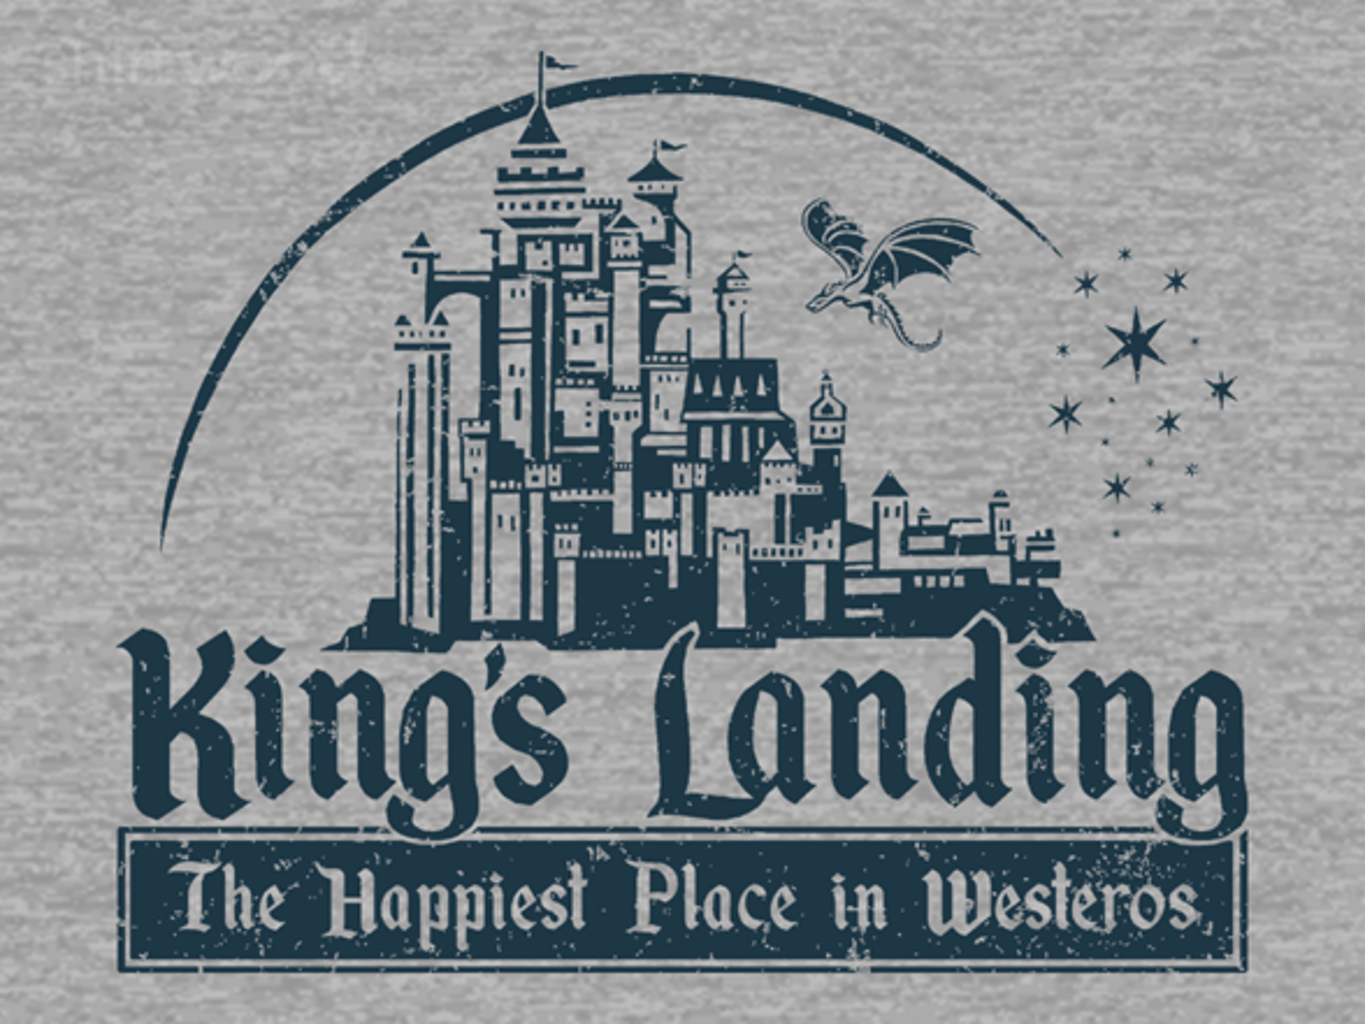 Woot!: The Happiest Place in Westeros